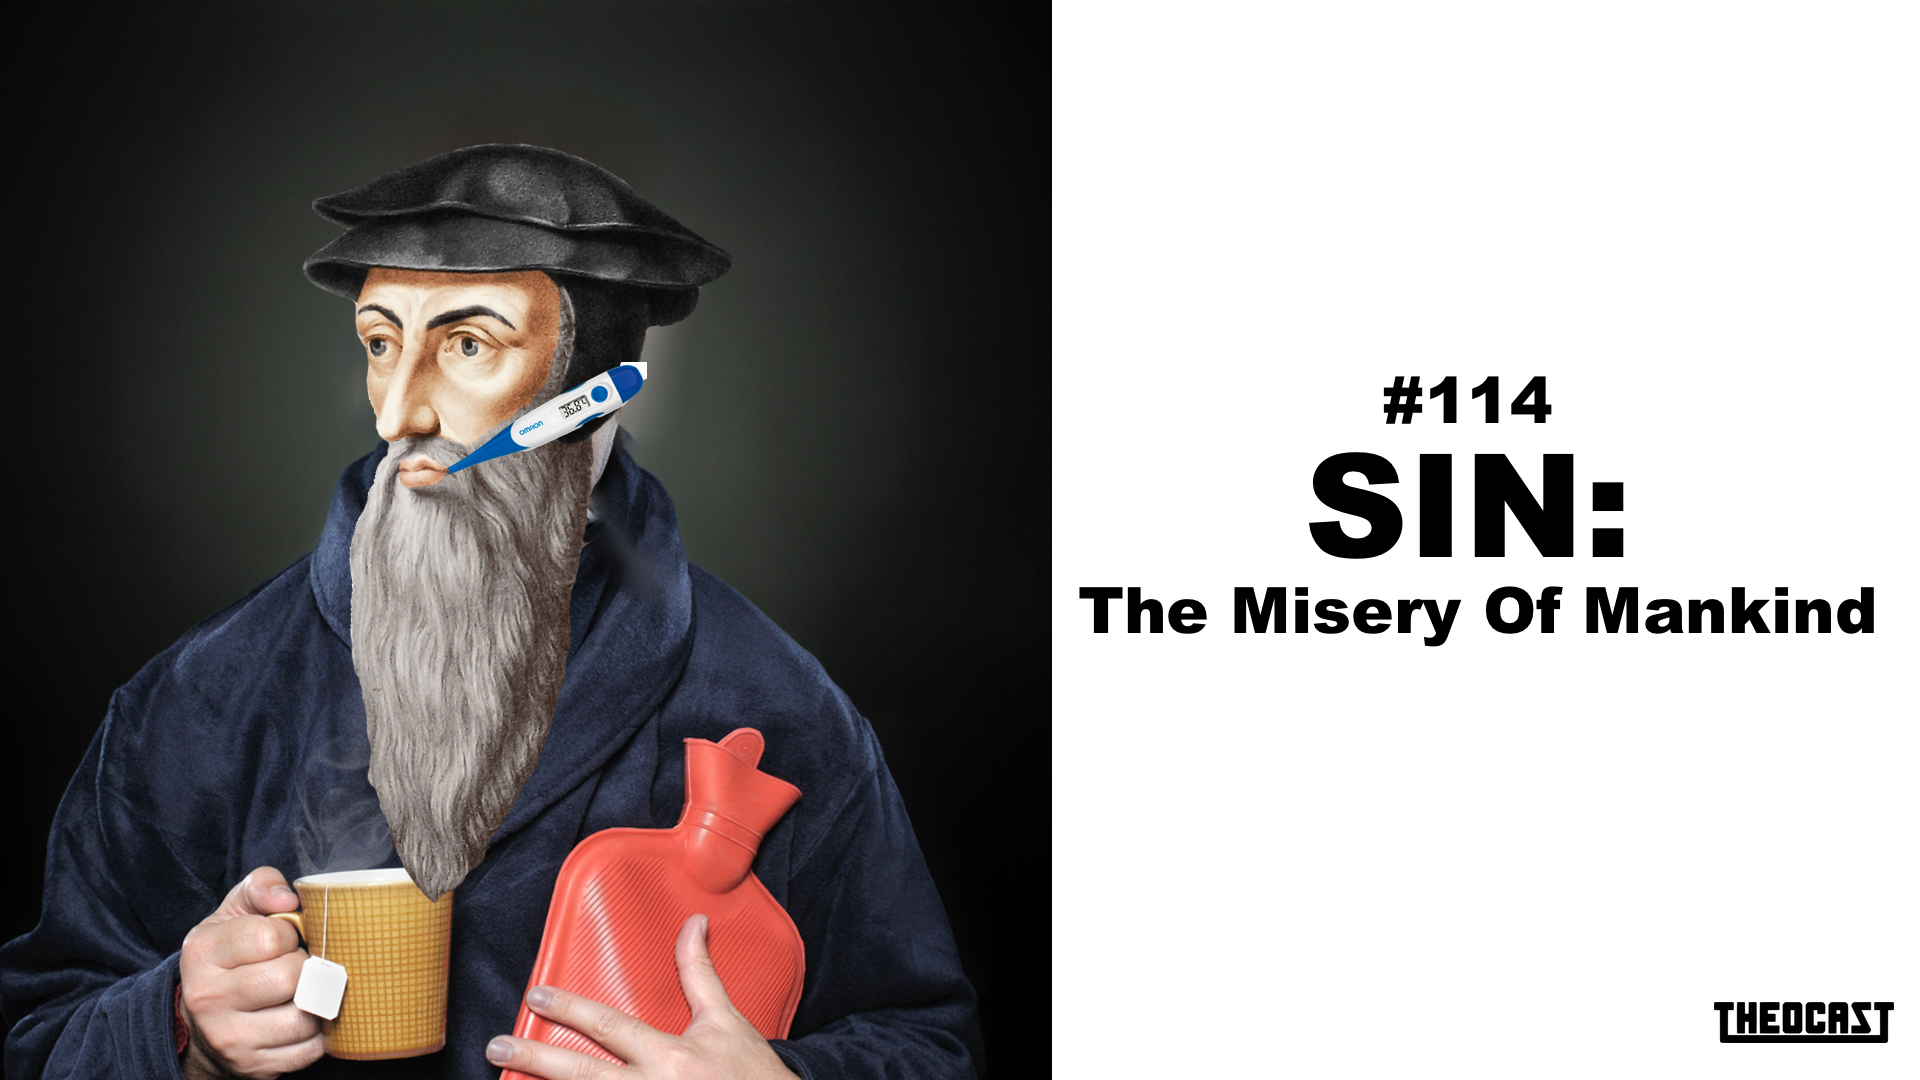 #114 Sin: The Misery of Mankind